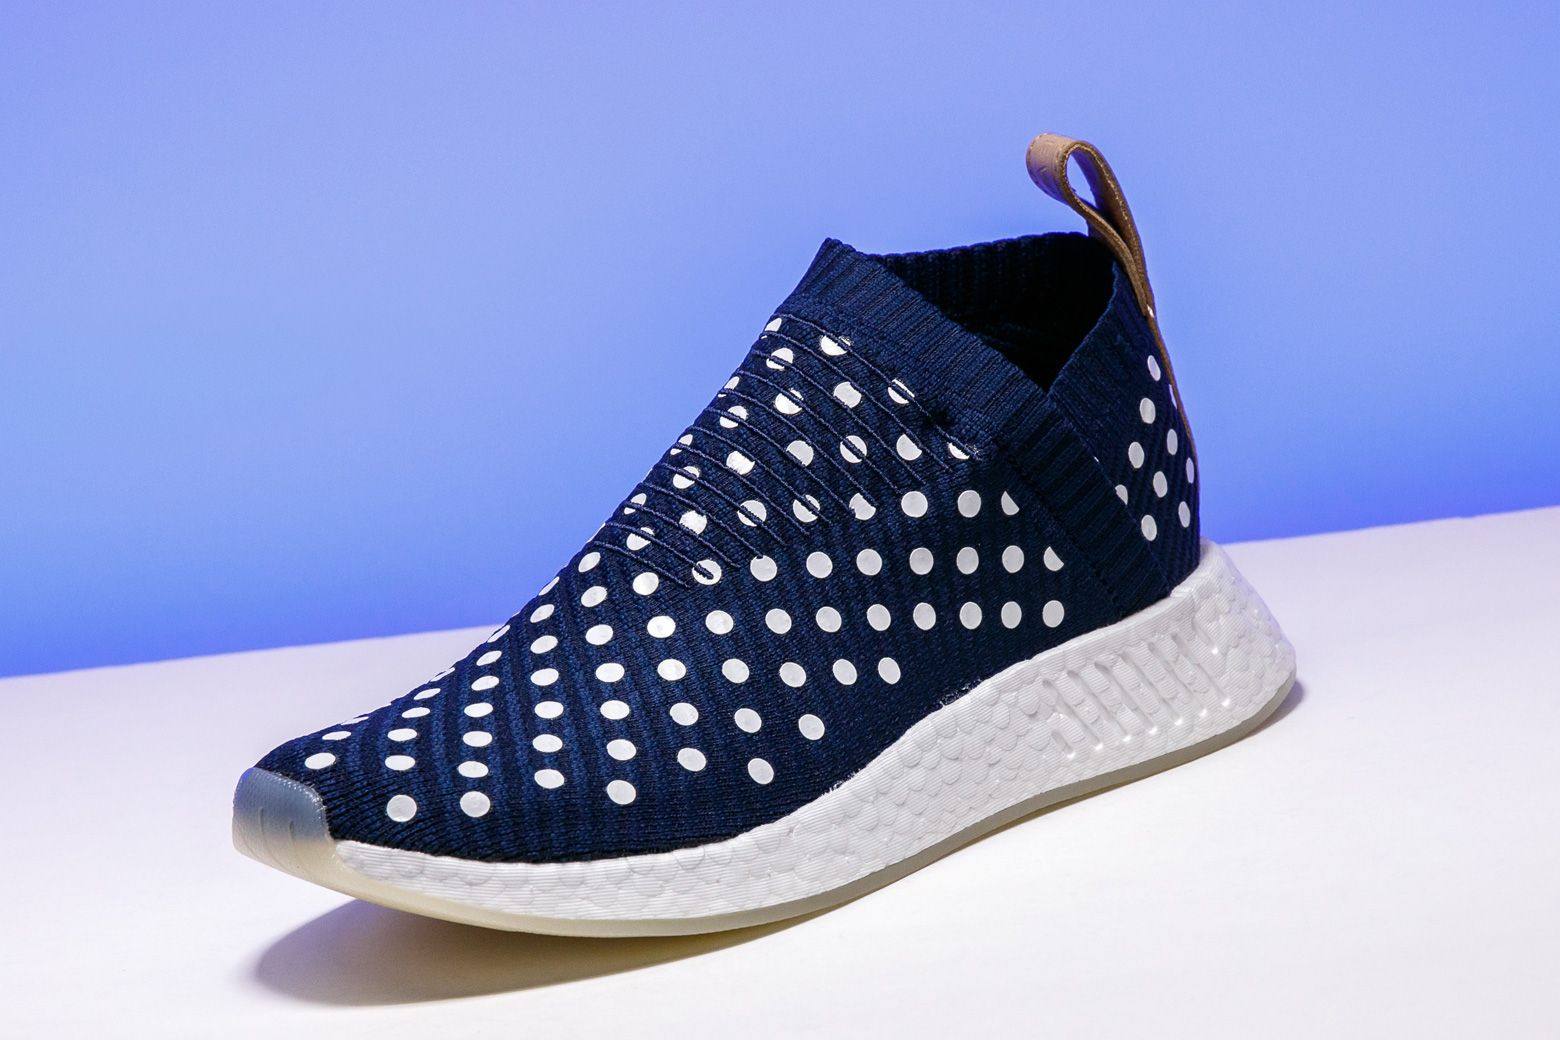 5744bfc50 The adidas NMD CS2 continues the legacy of the slip-on model